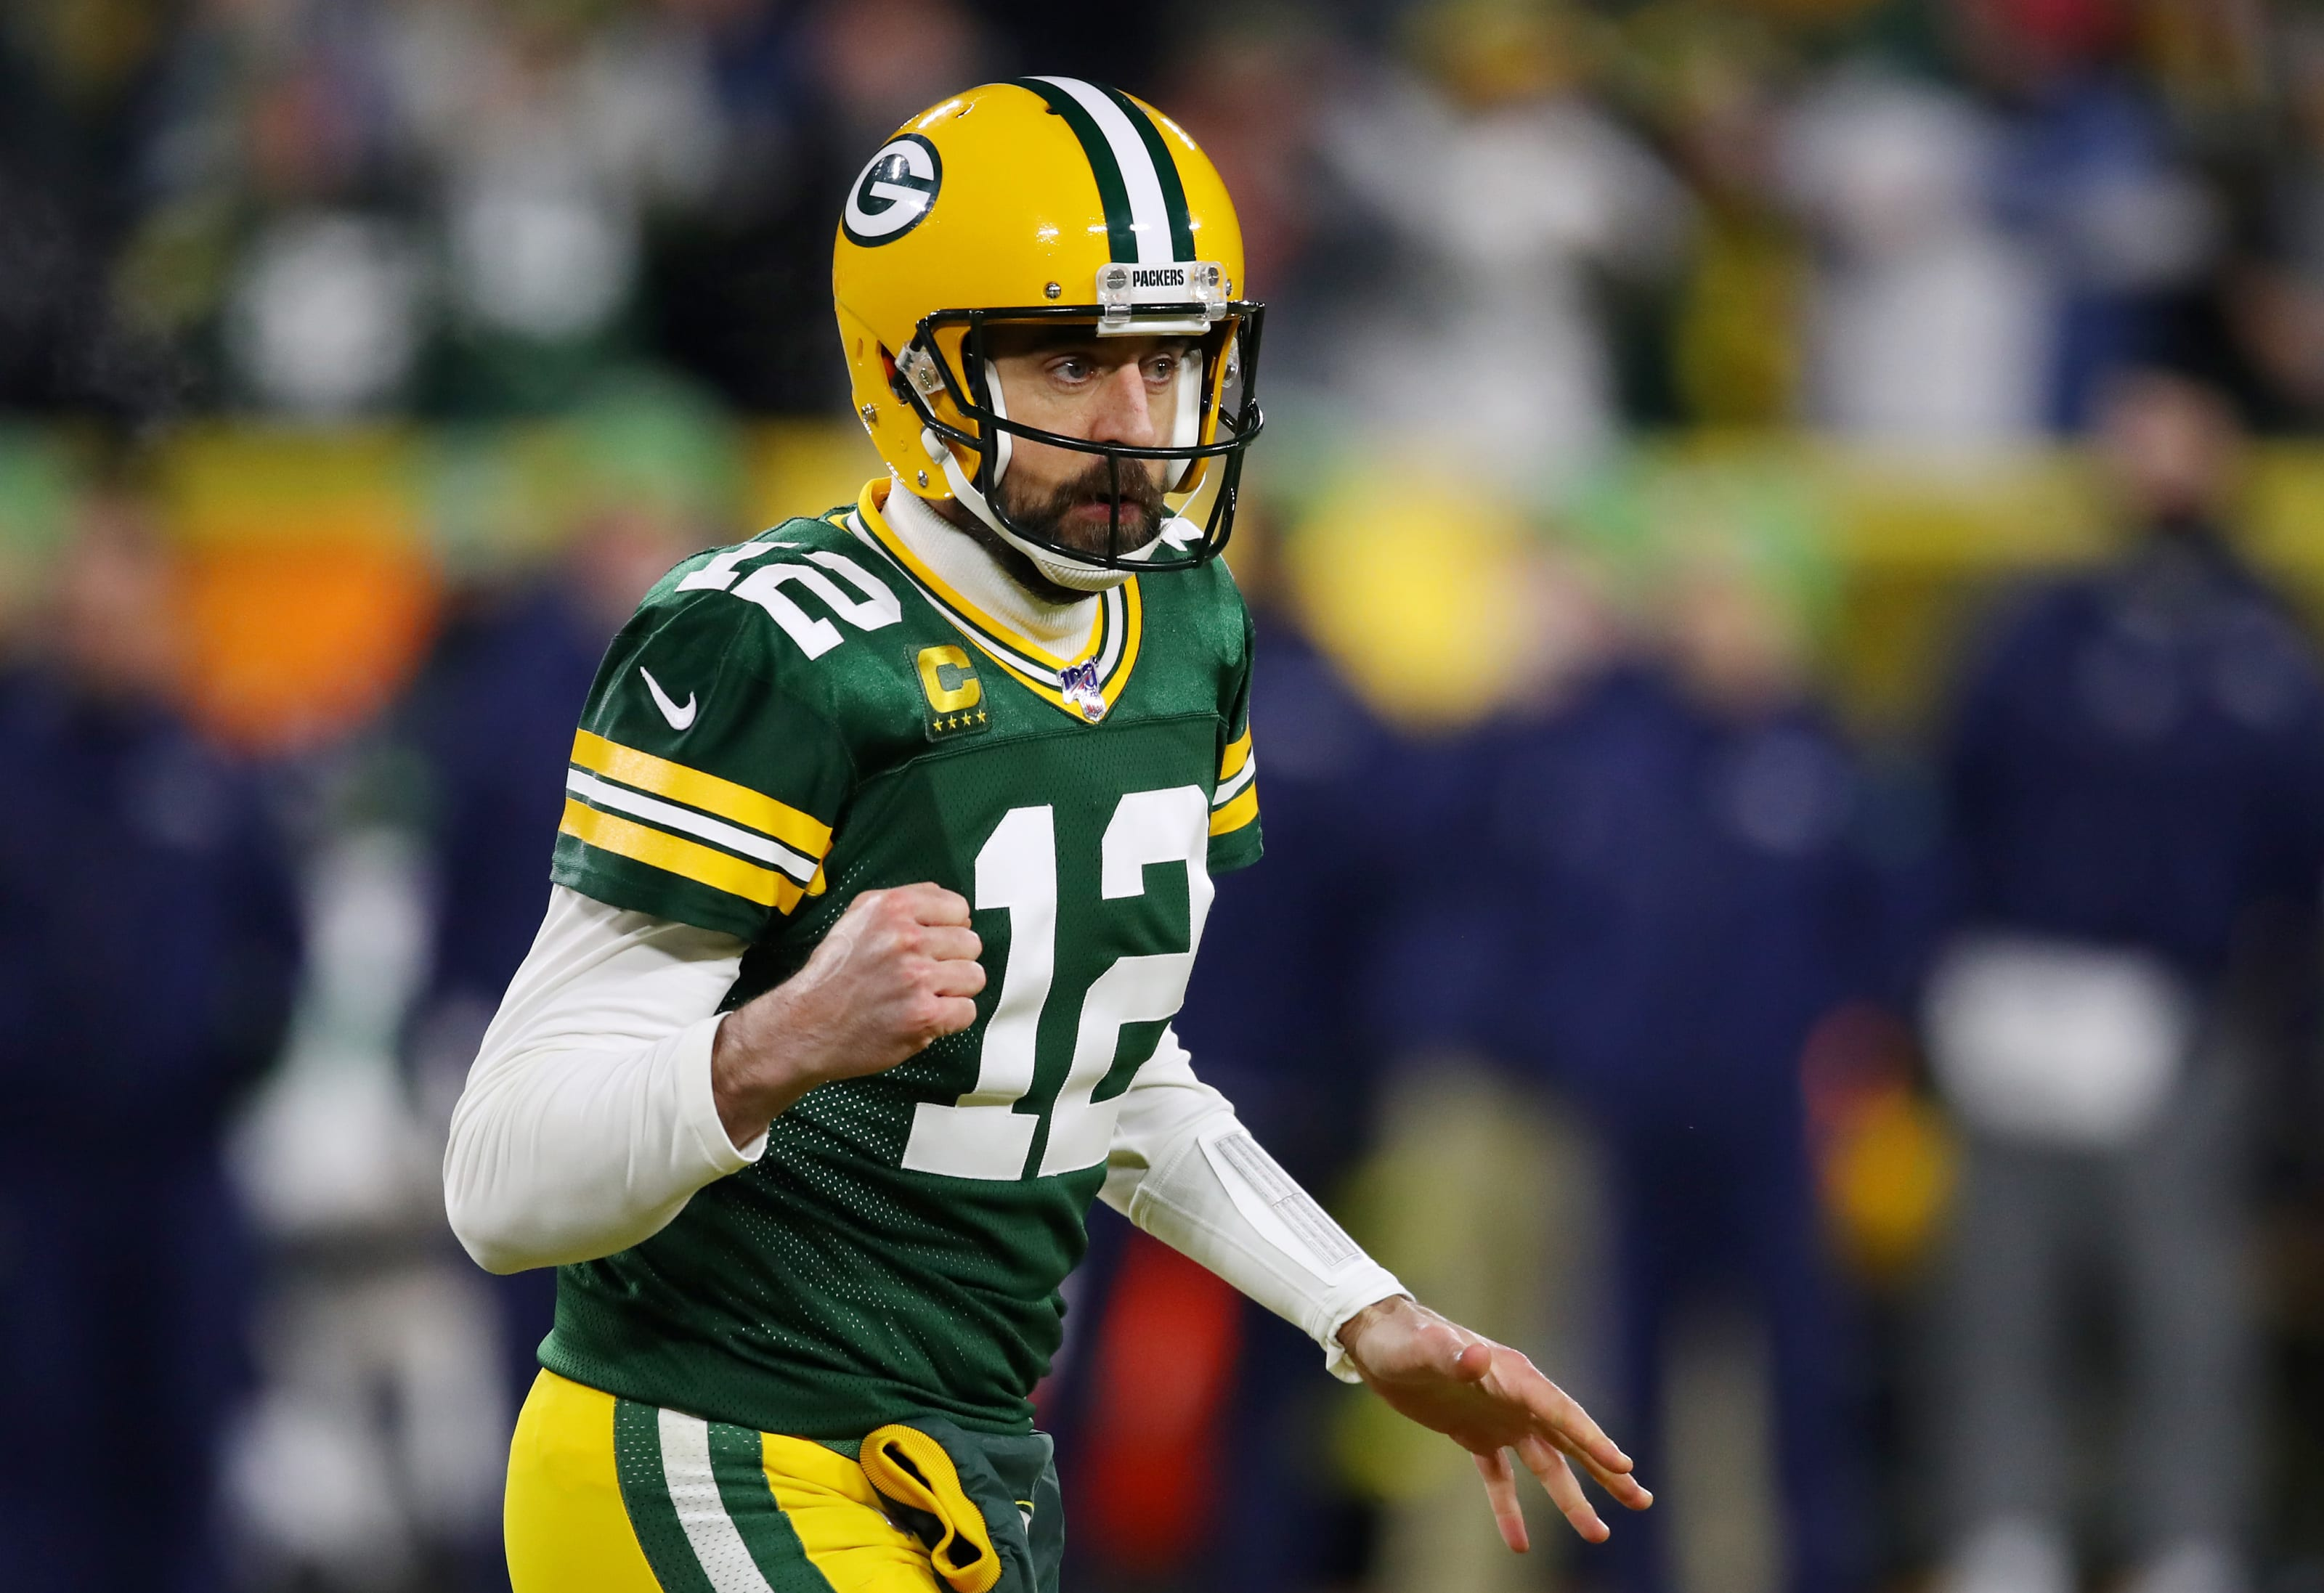 Green Bay Packers Studs And Duds From Playoff Win Over Seahawks